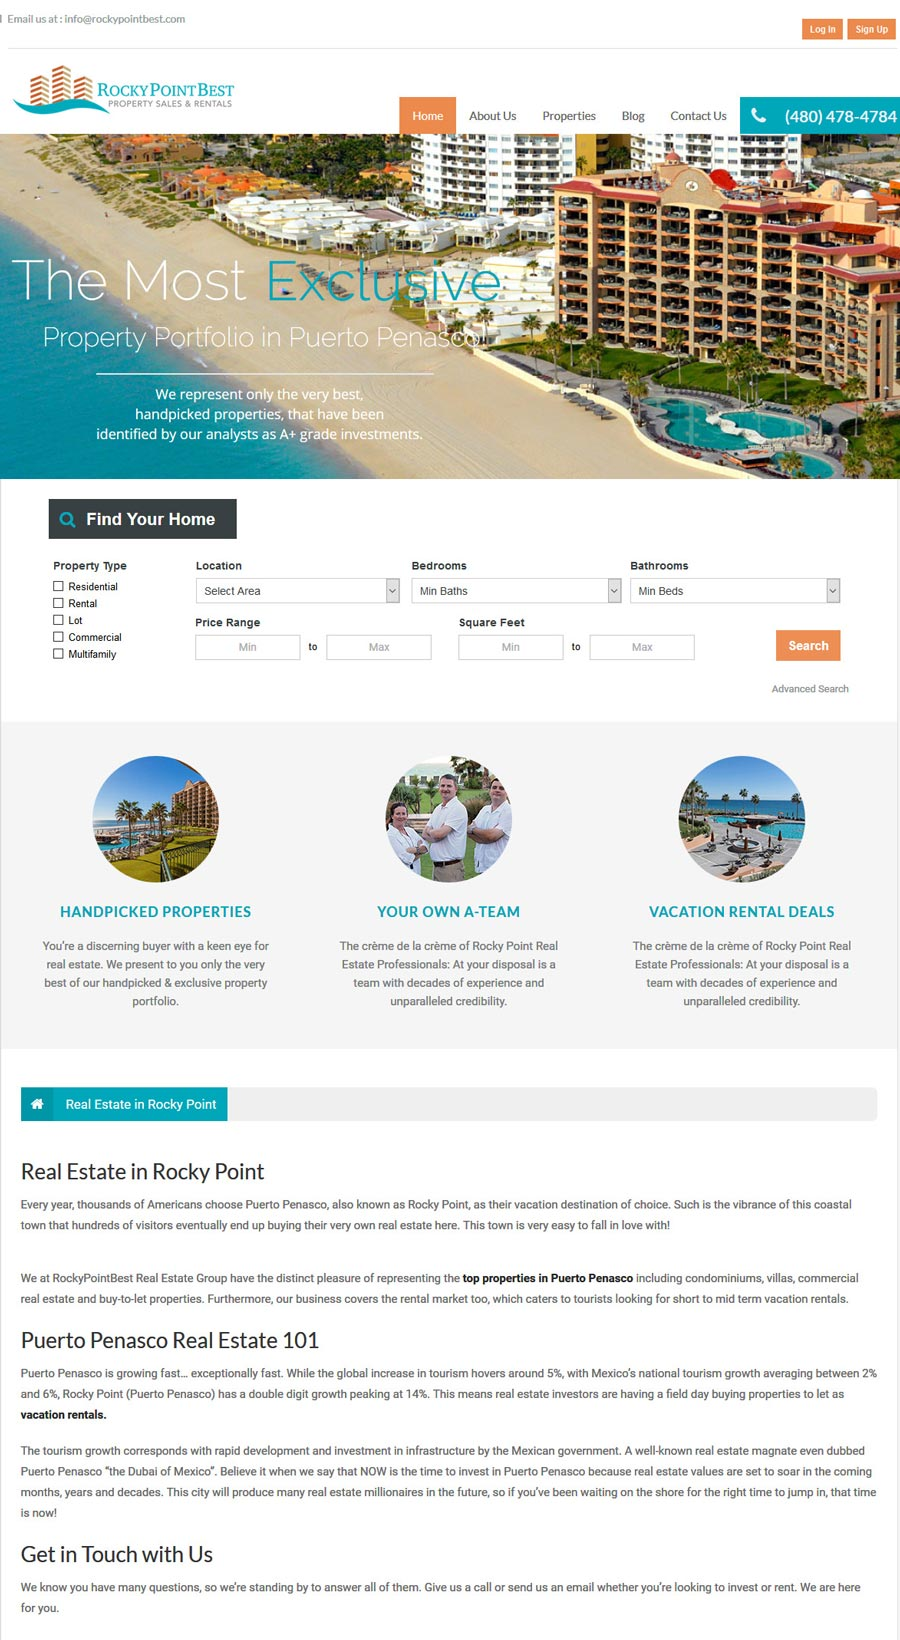 Rocky Point Best Real Estate in Rocky Point (Puerto Penasco). Click here to visit Rocky Point Best's website